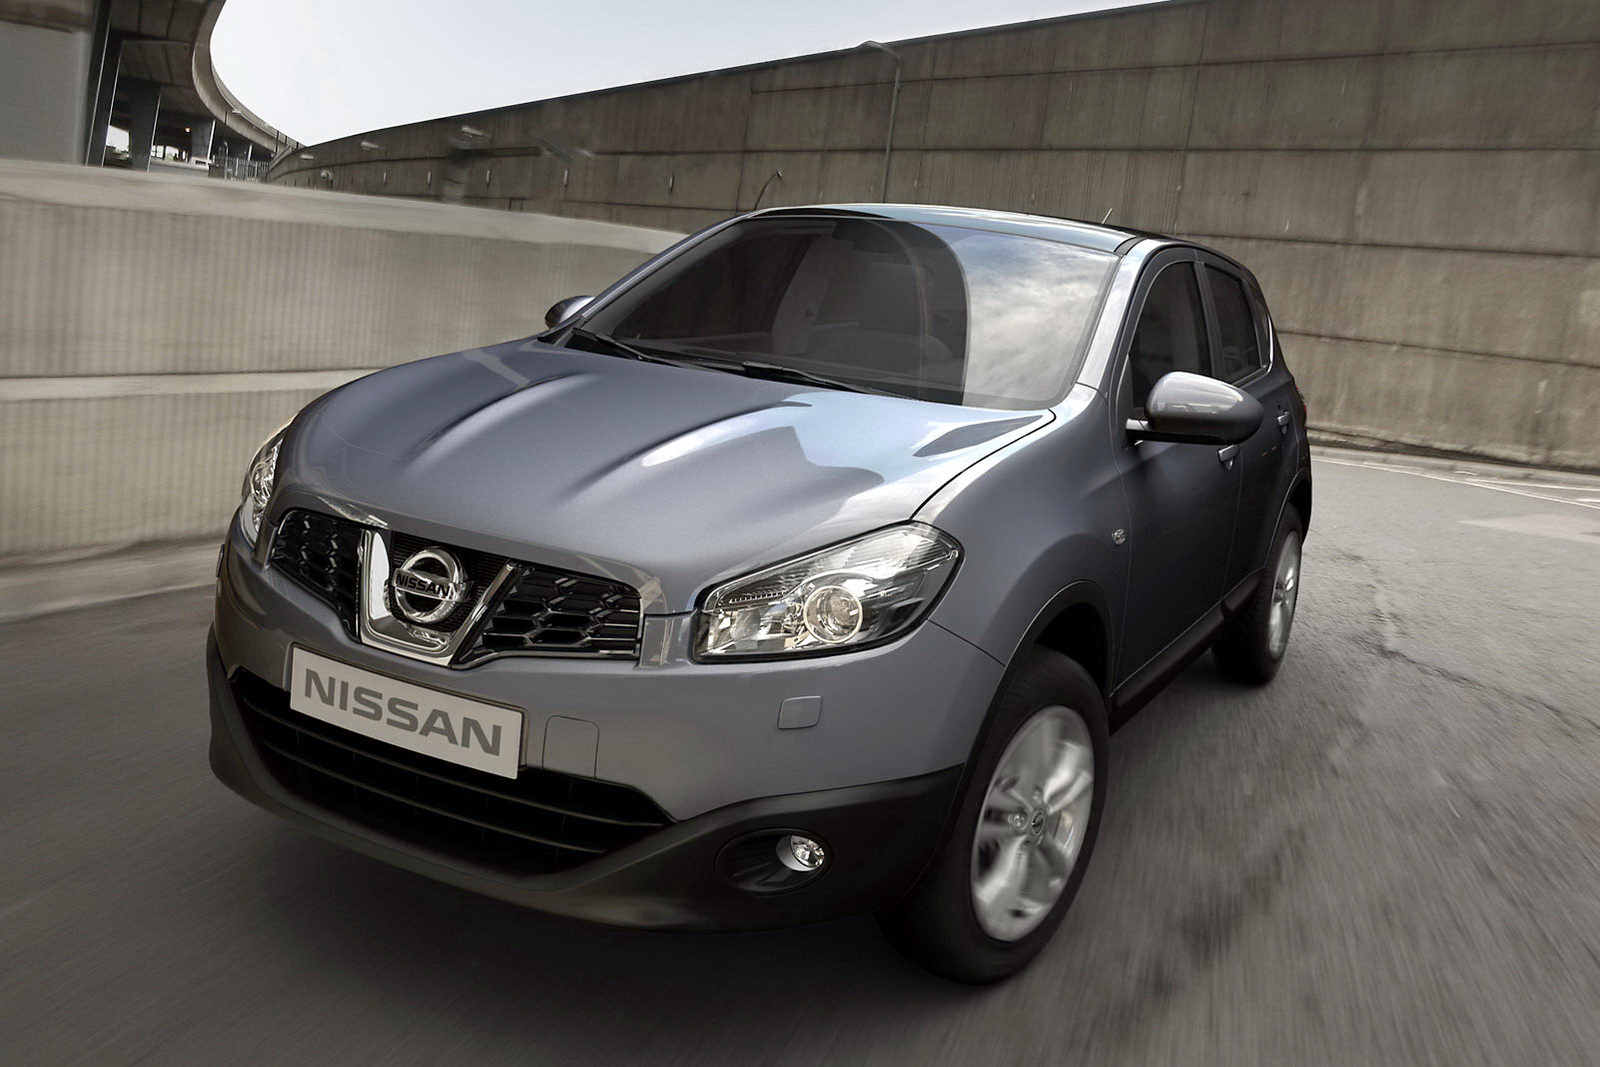 nissan qashqai 2010 facelift. Black Bedroom Furniture Sets. Home Design Ideas